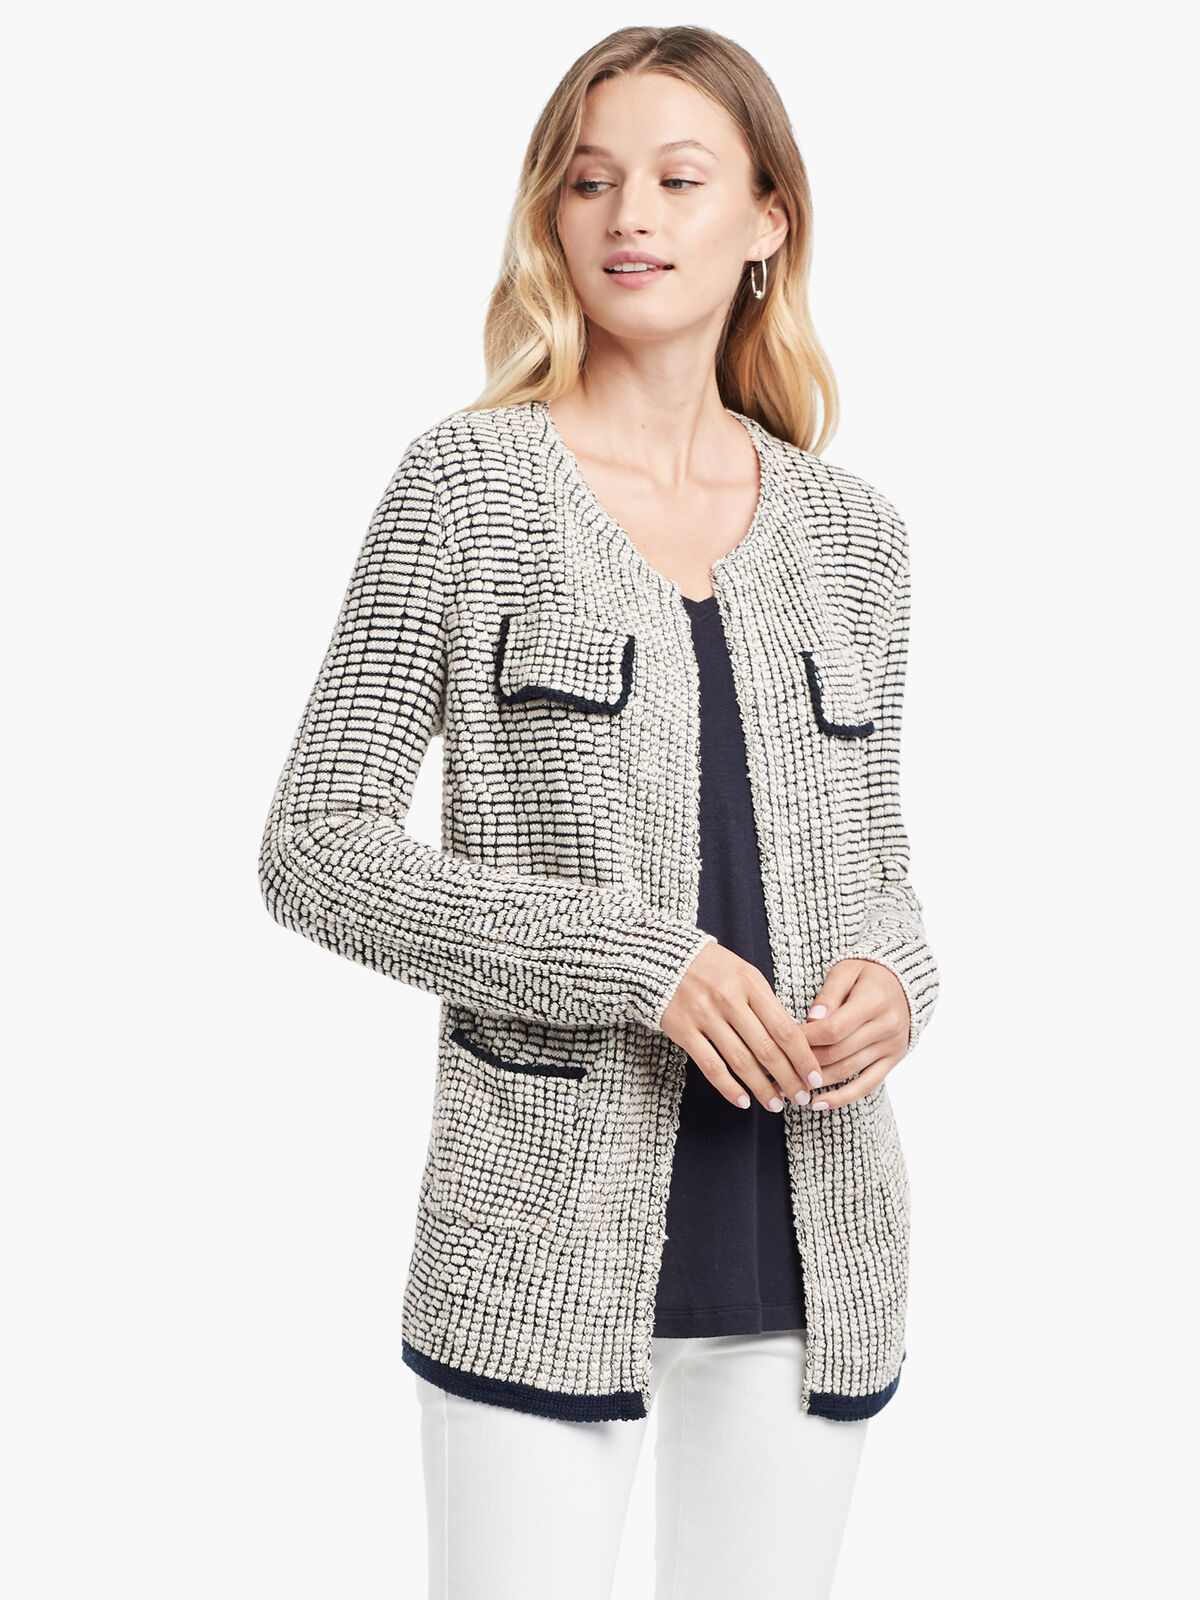 Textured Knit Jacket